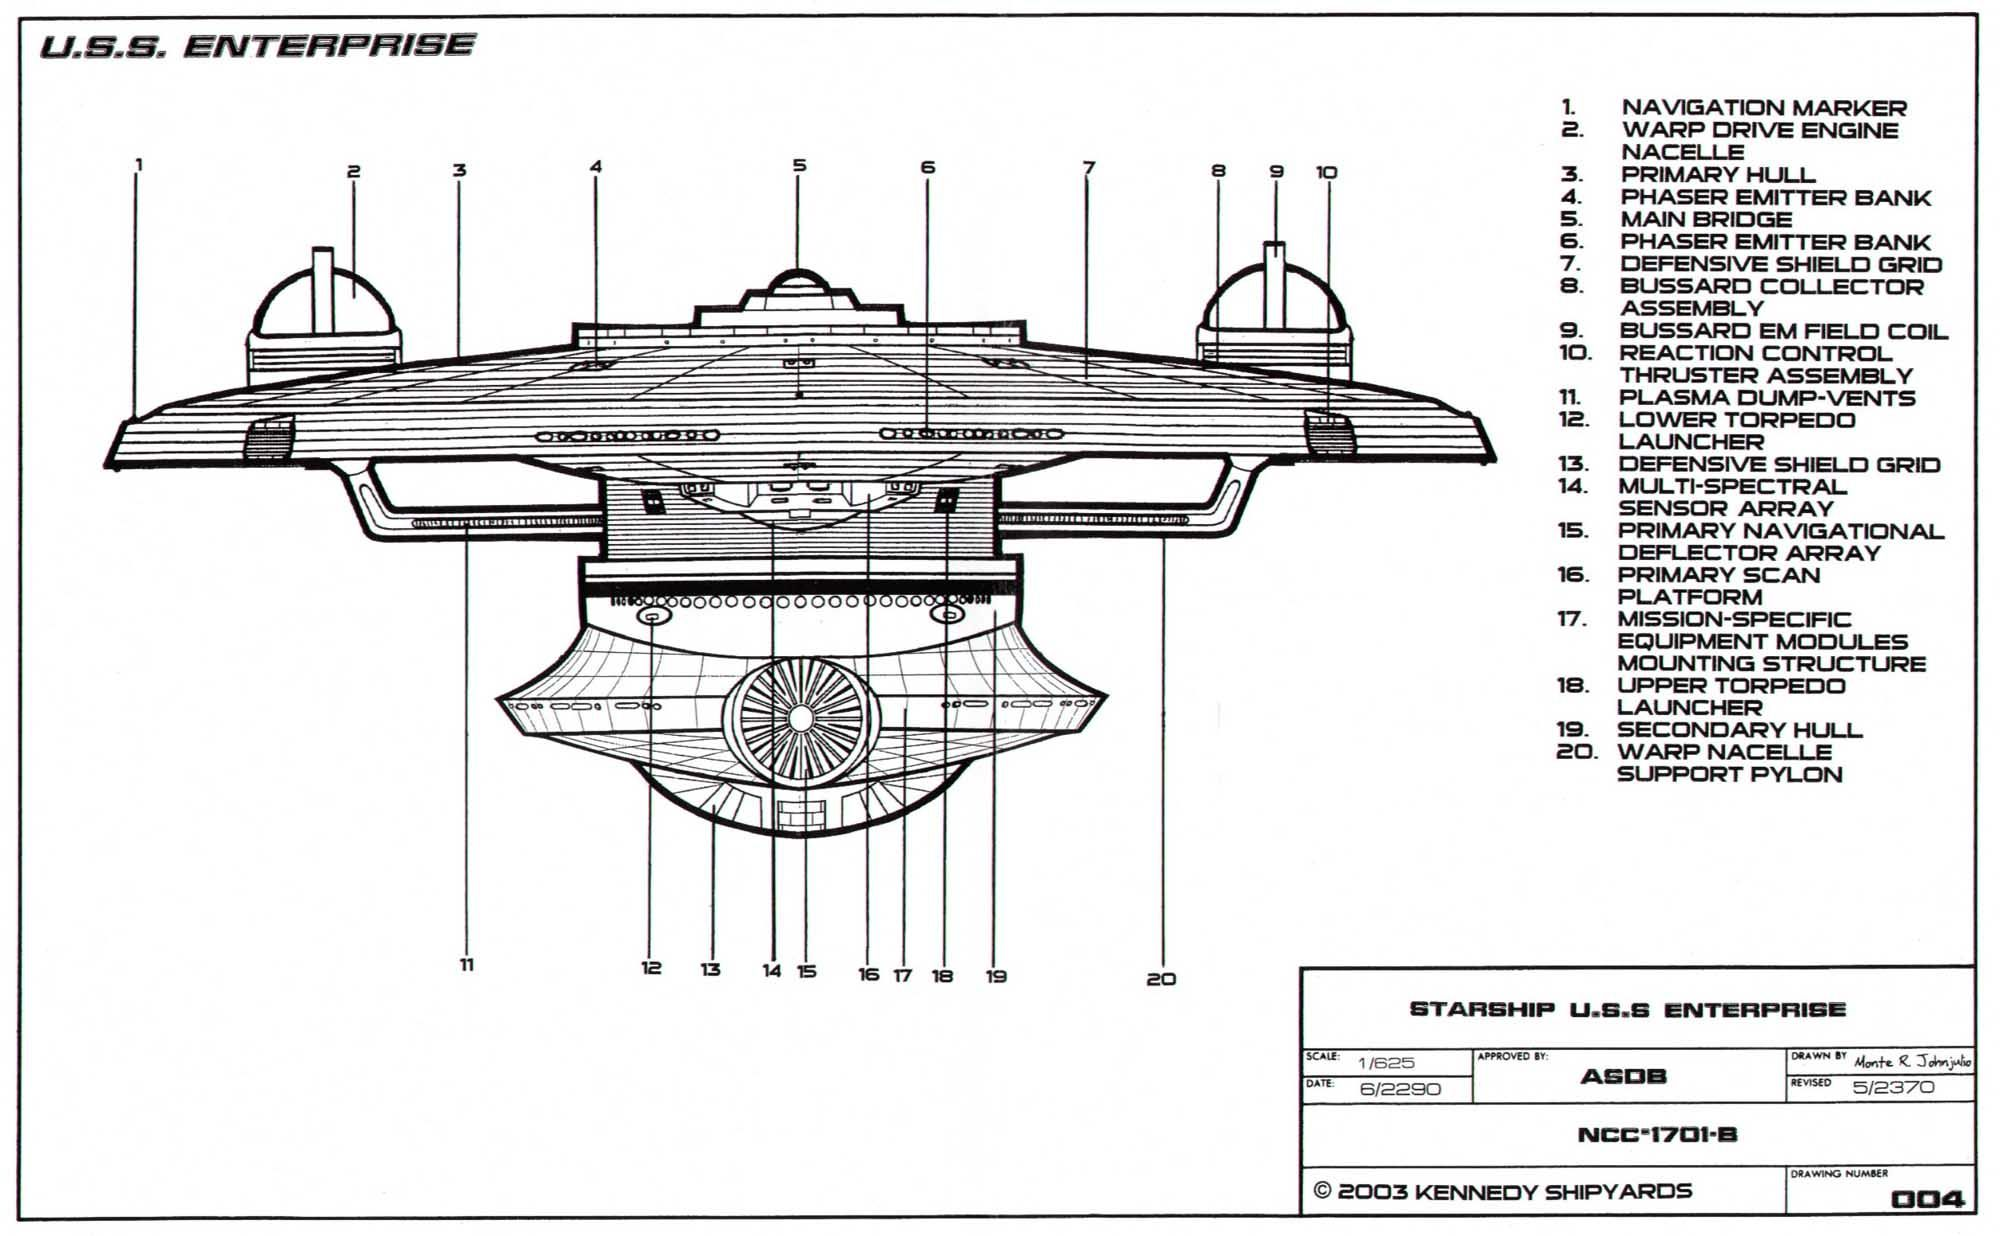 Bow Side Schematic Of The Excelsior Class Enterprise Ncc B Star Trek